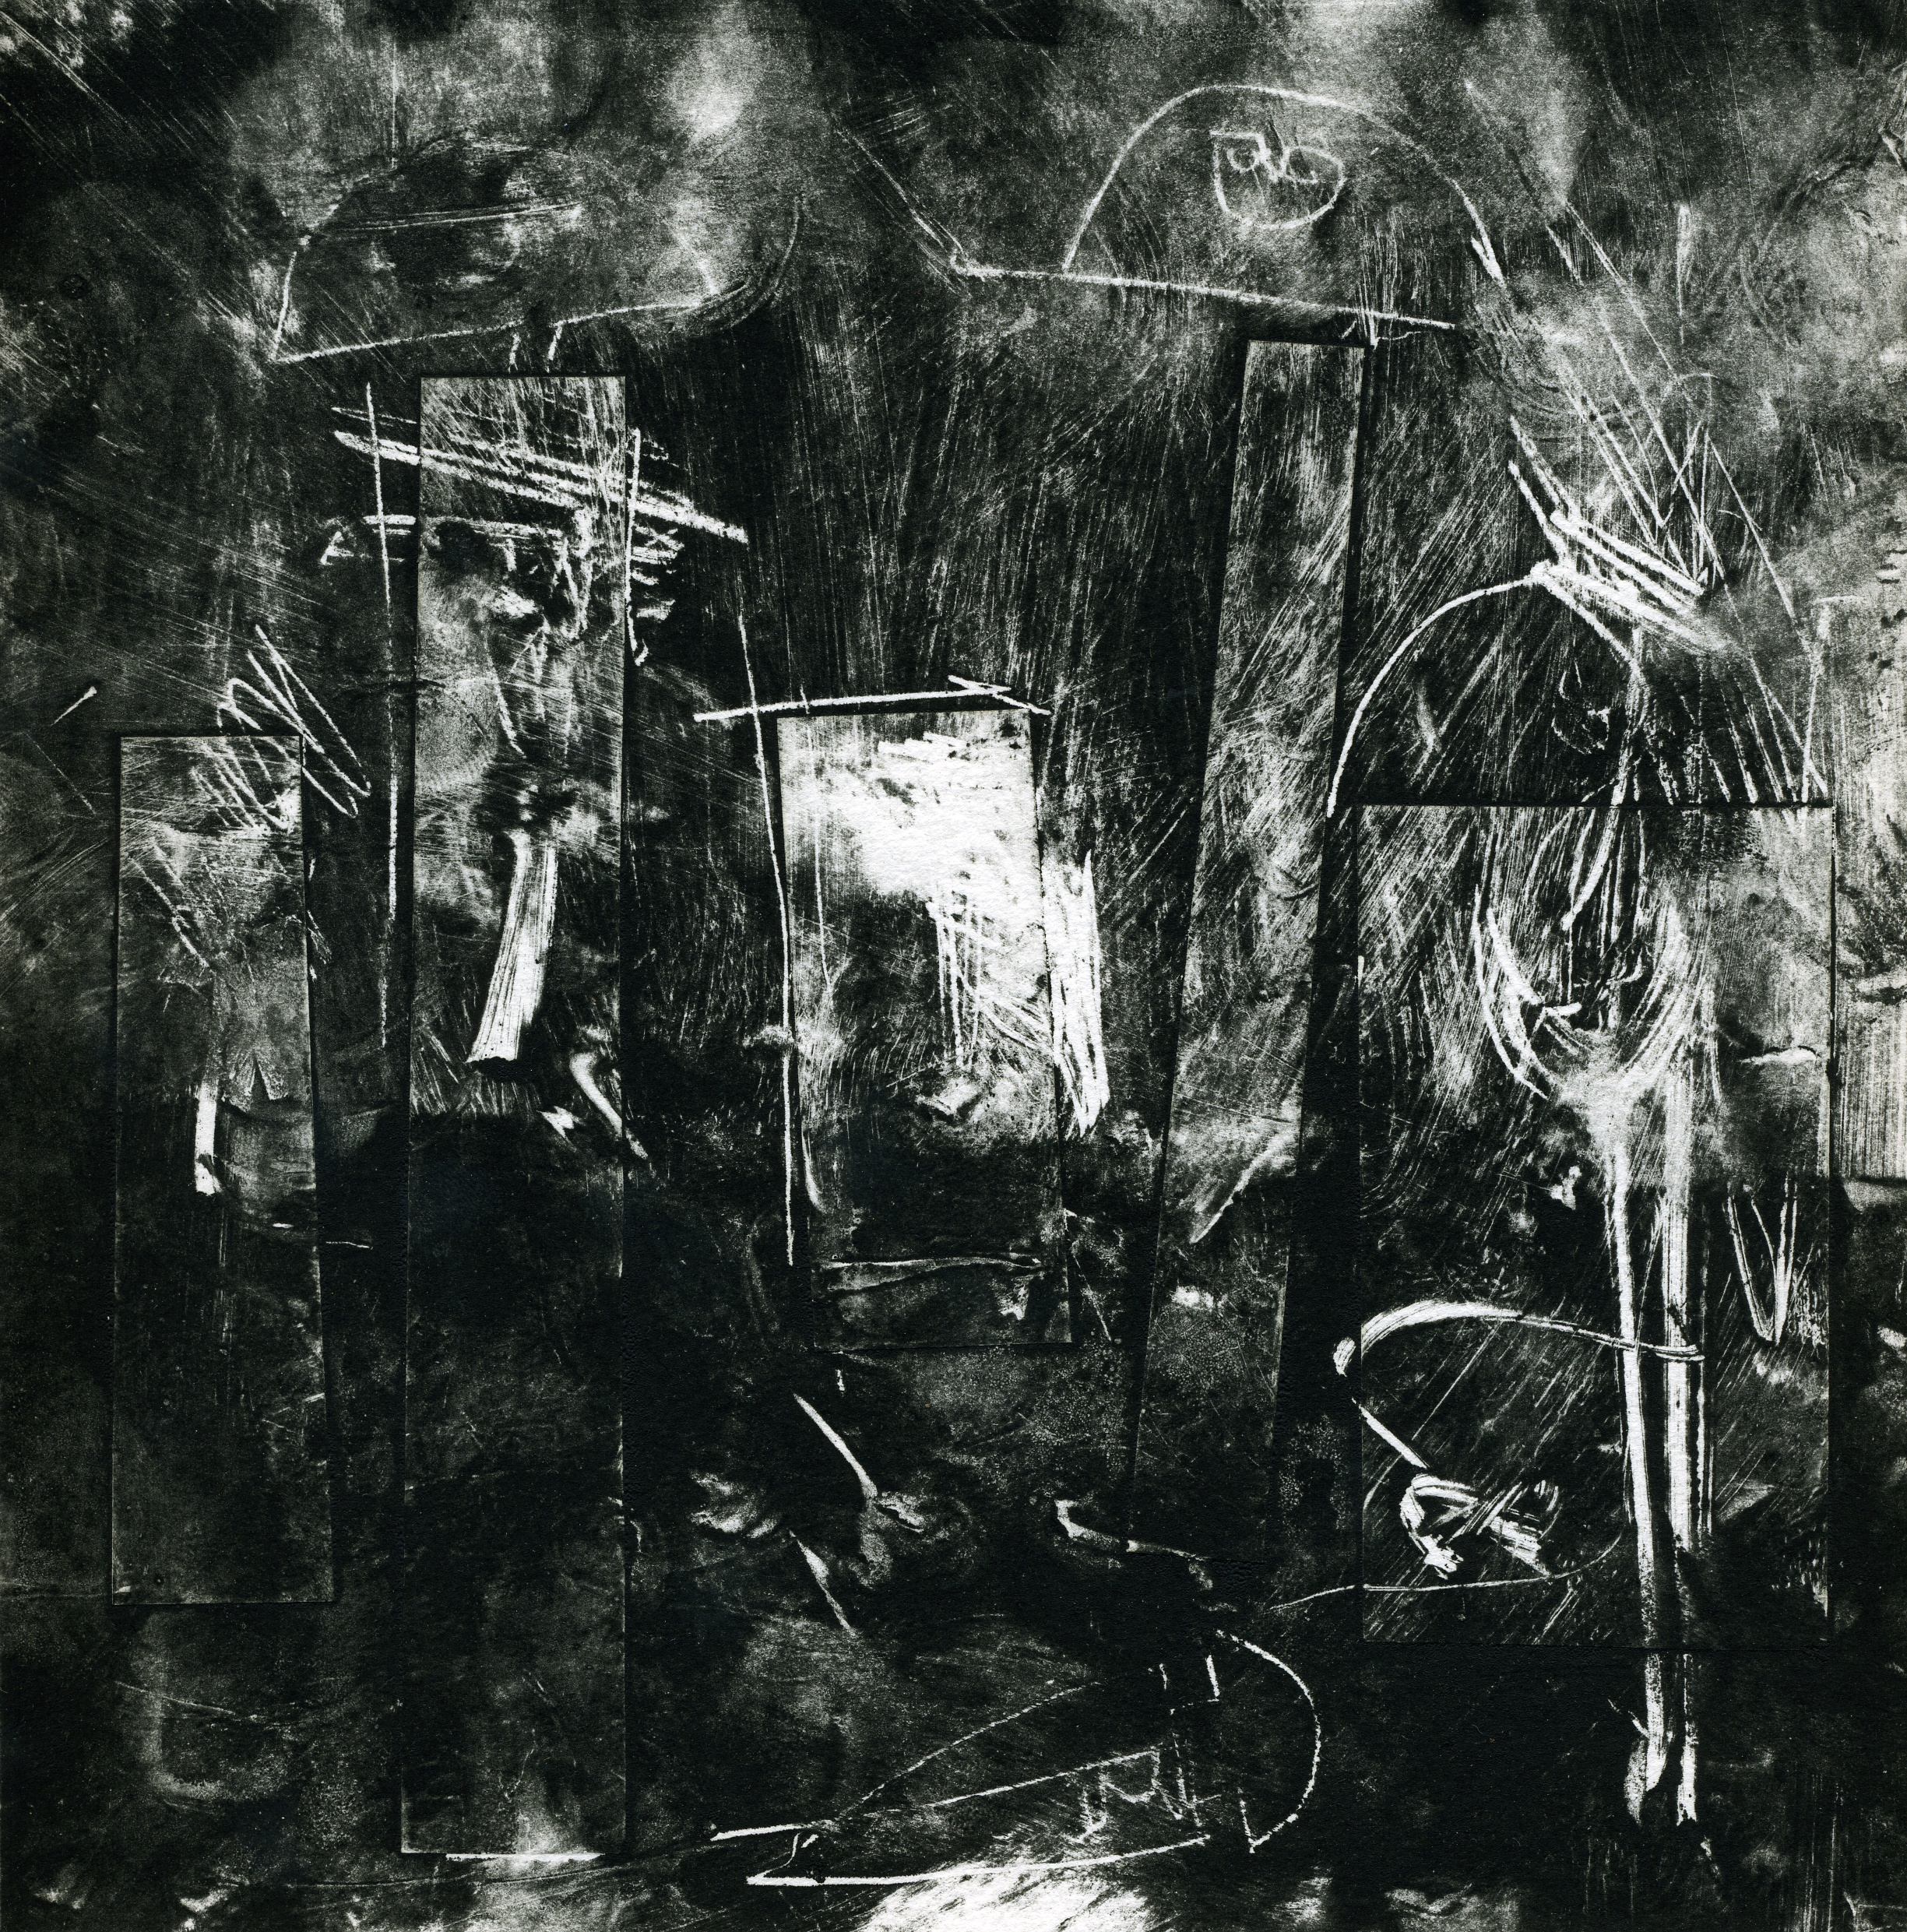 A monotype print by Clive Knights studying the Statue-Stele of Lunigiana